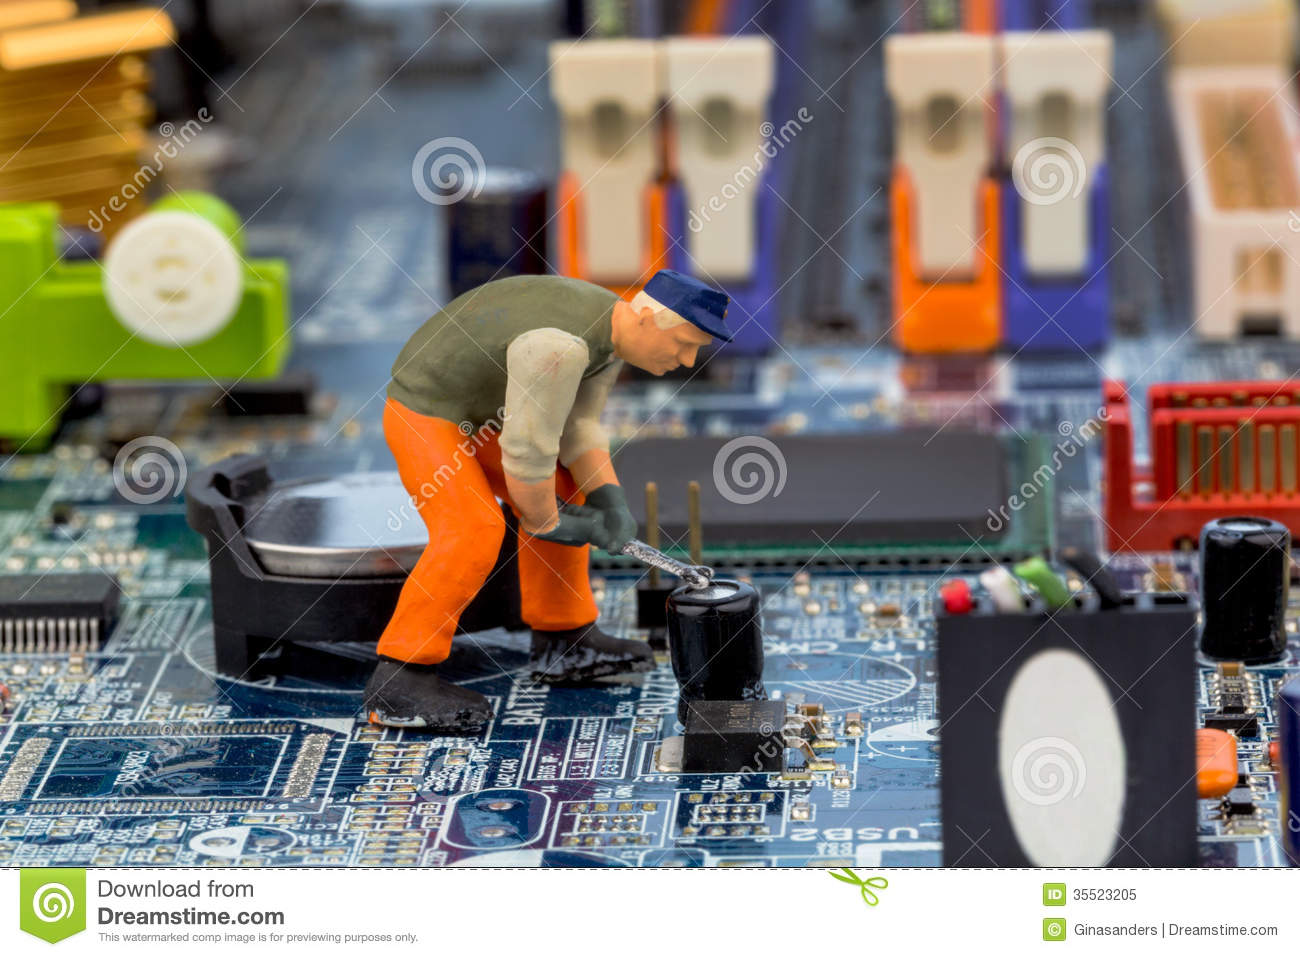 Computer Board And Construction Workers Royalty Free Stock